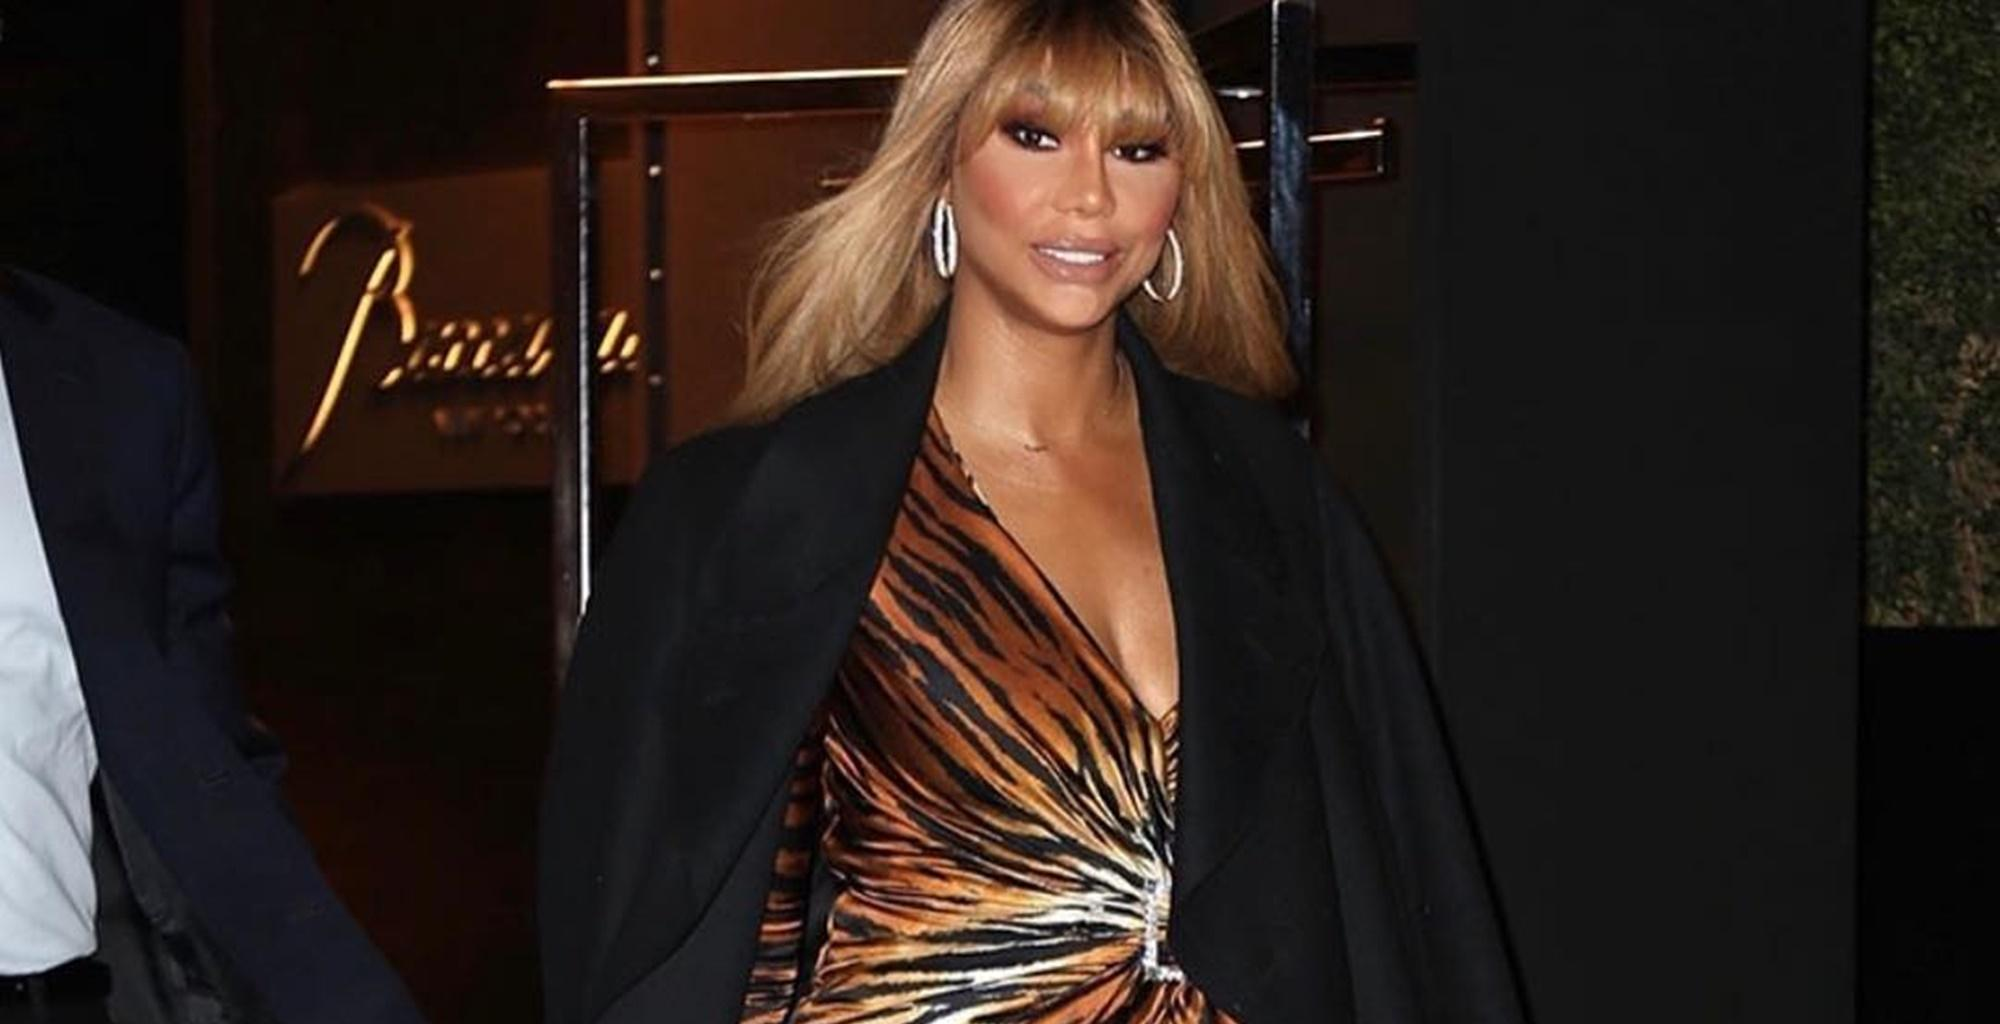 After Posting This Flirty Video, Tamar Braxton Got Blasted For Going Too Far With Plastic Surgeries